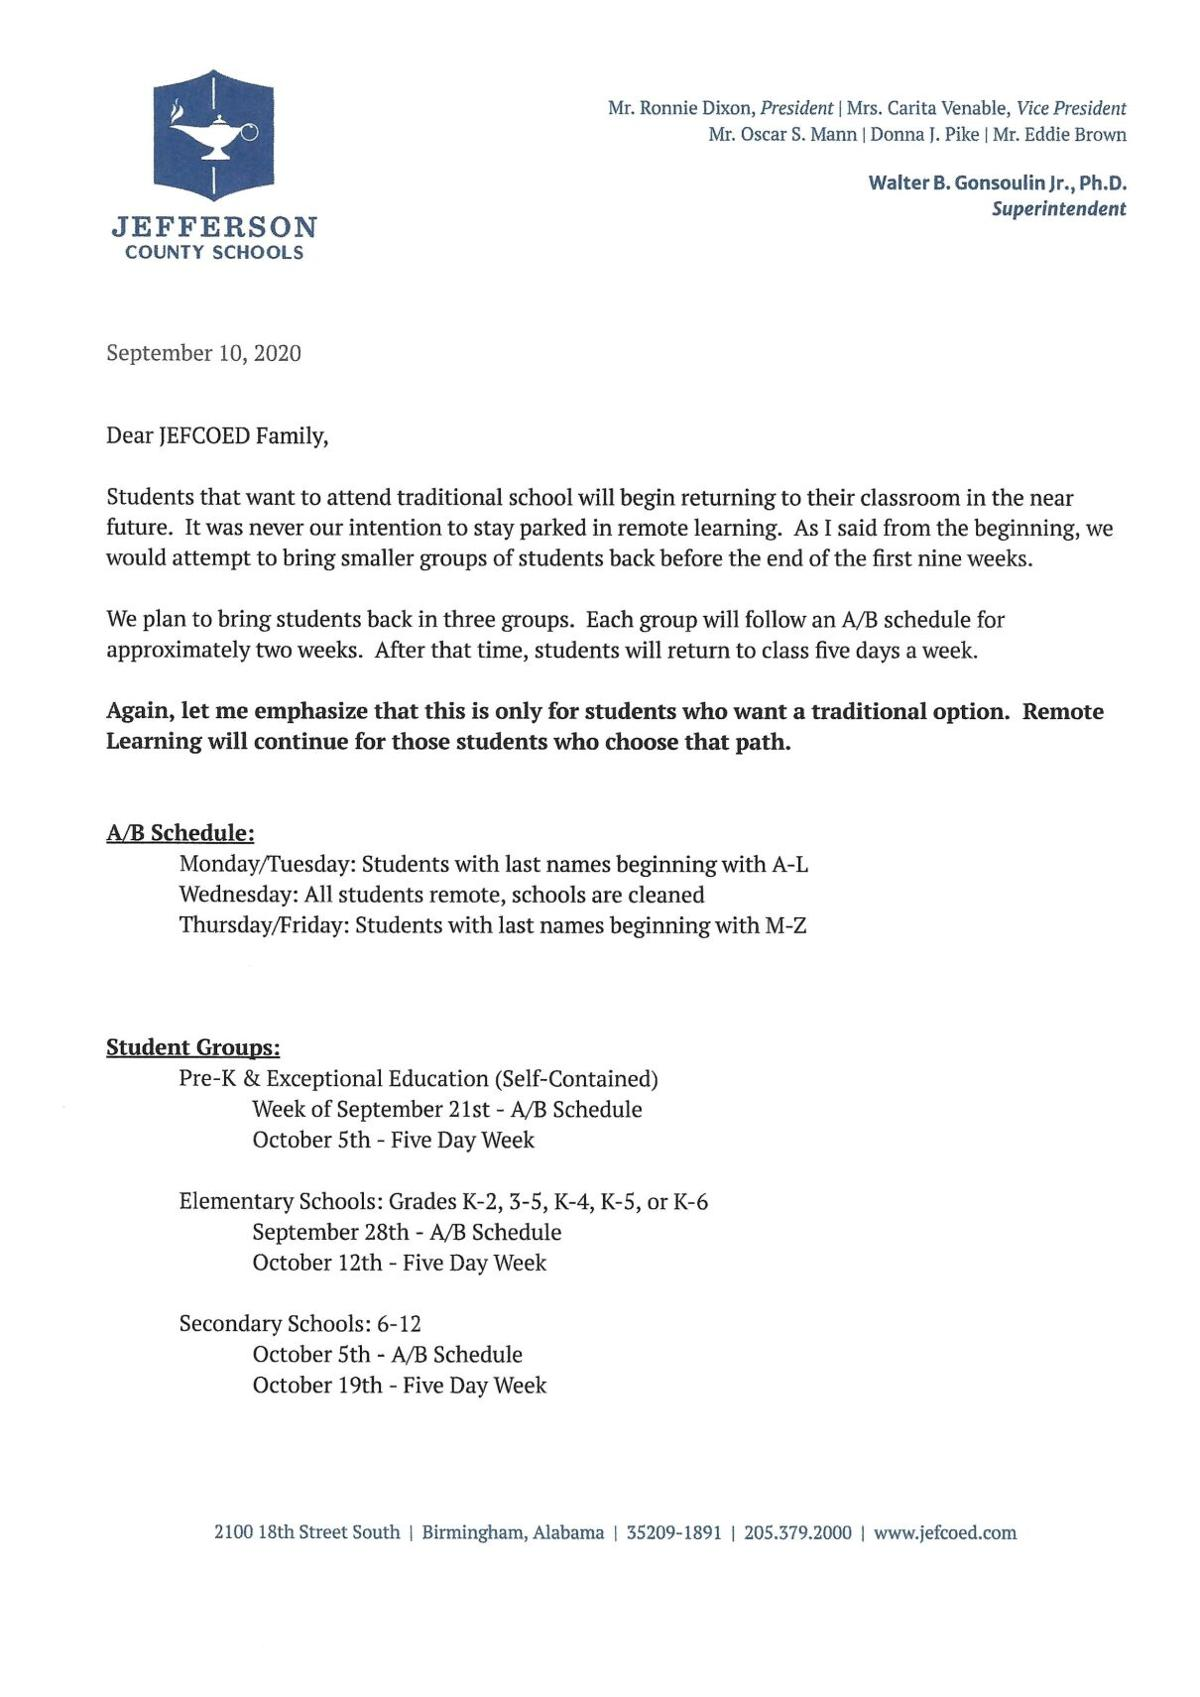 Return to Traditional School 9-10-20 Page 1.jpg